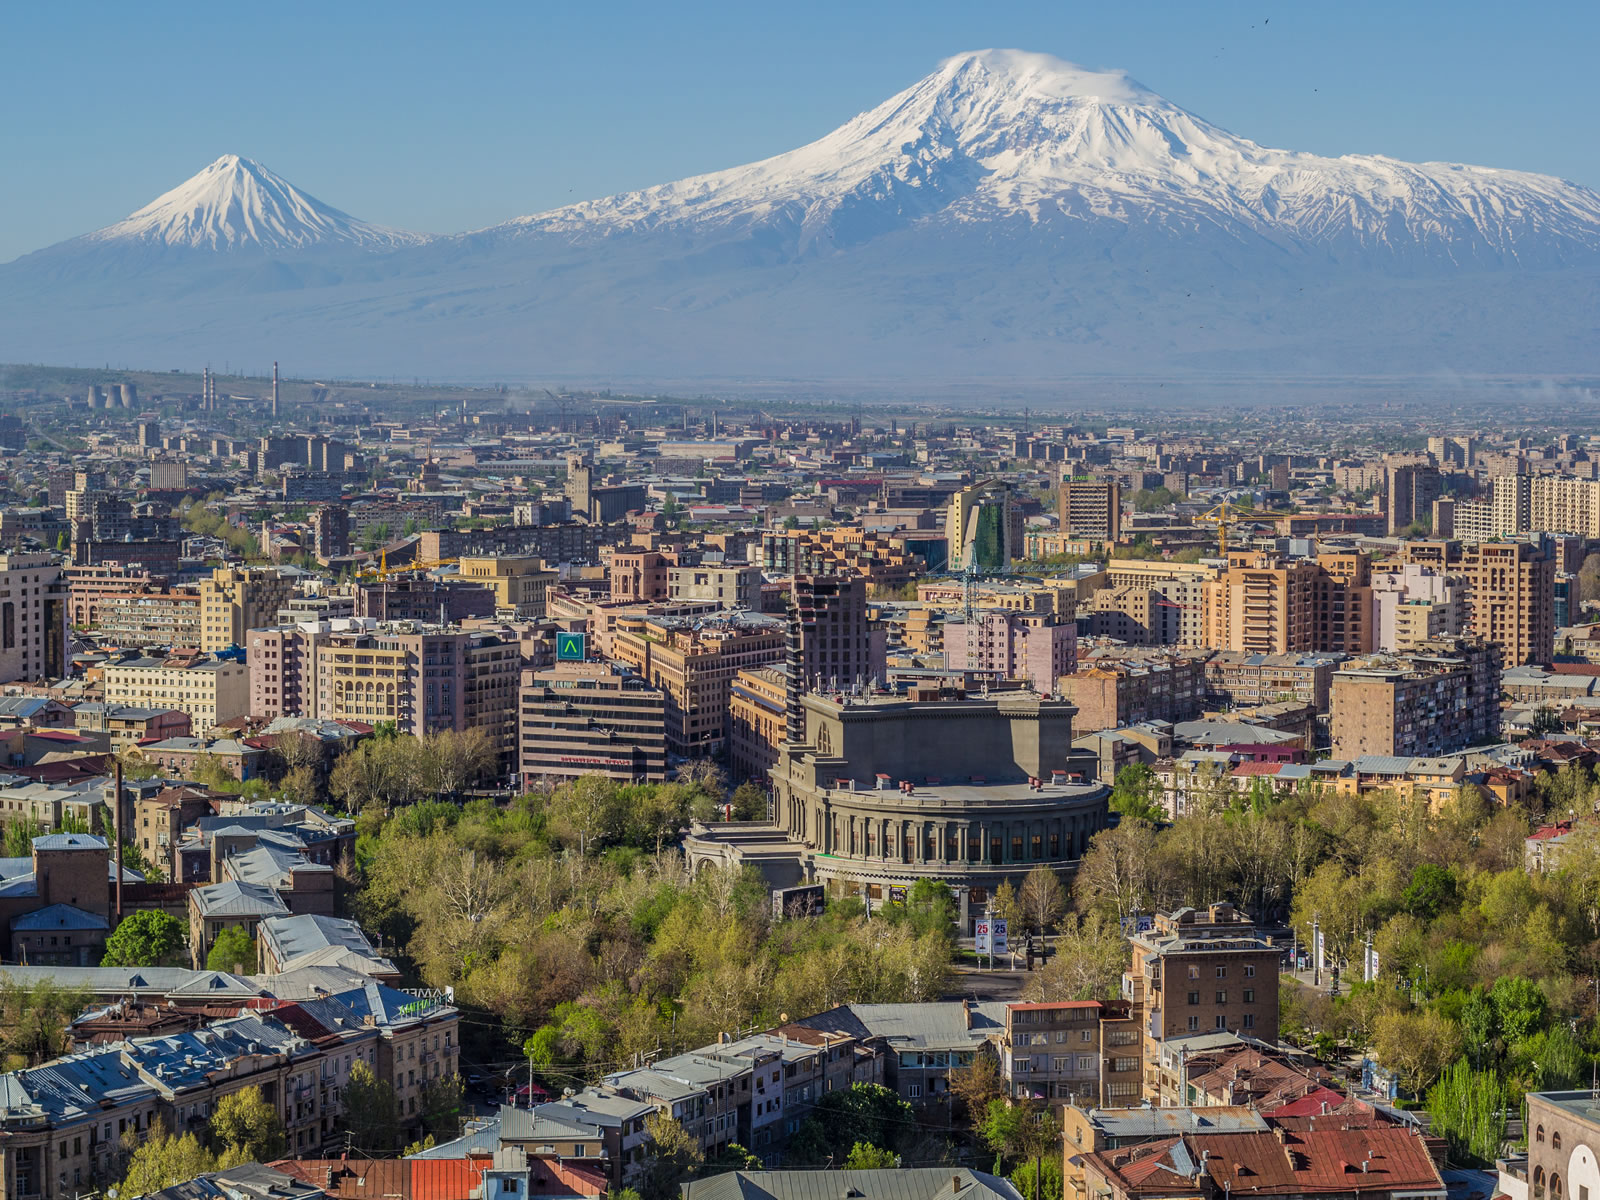 Mount_Ararat_and_the_Yerevan_skyline